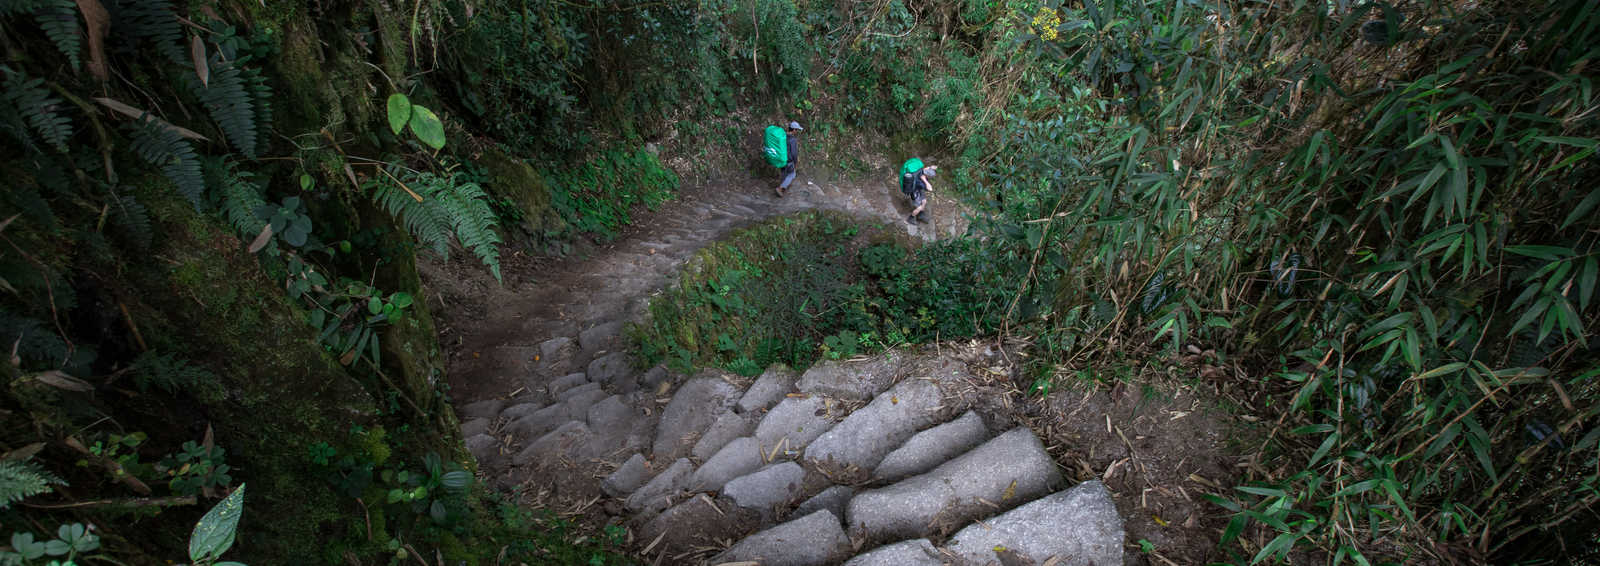 Machu Picchu: The Not So Lost City for Exodus Porters